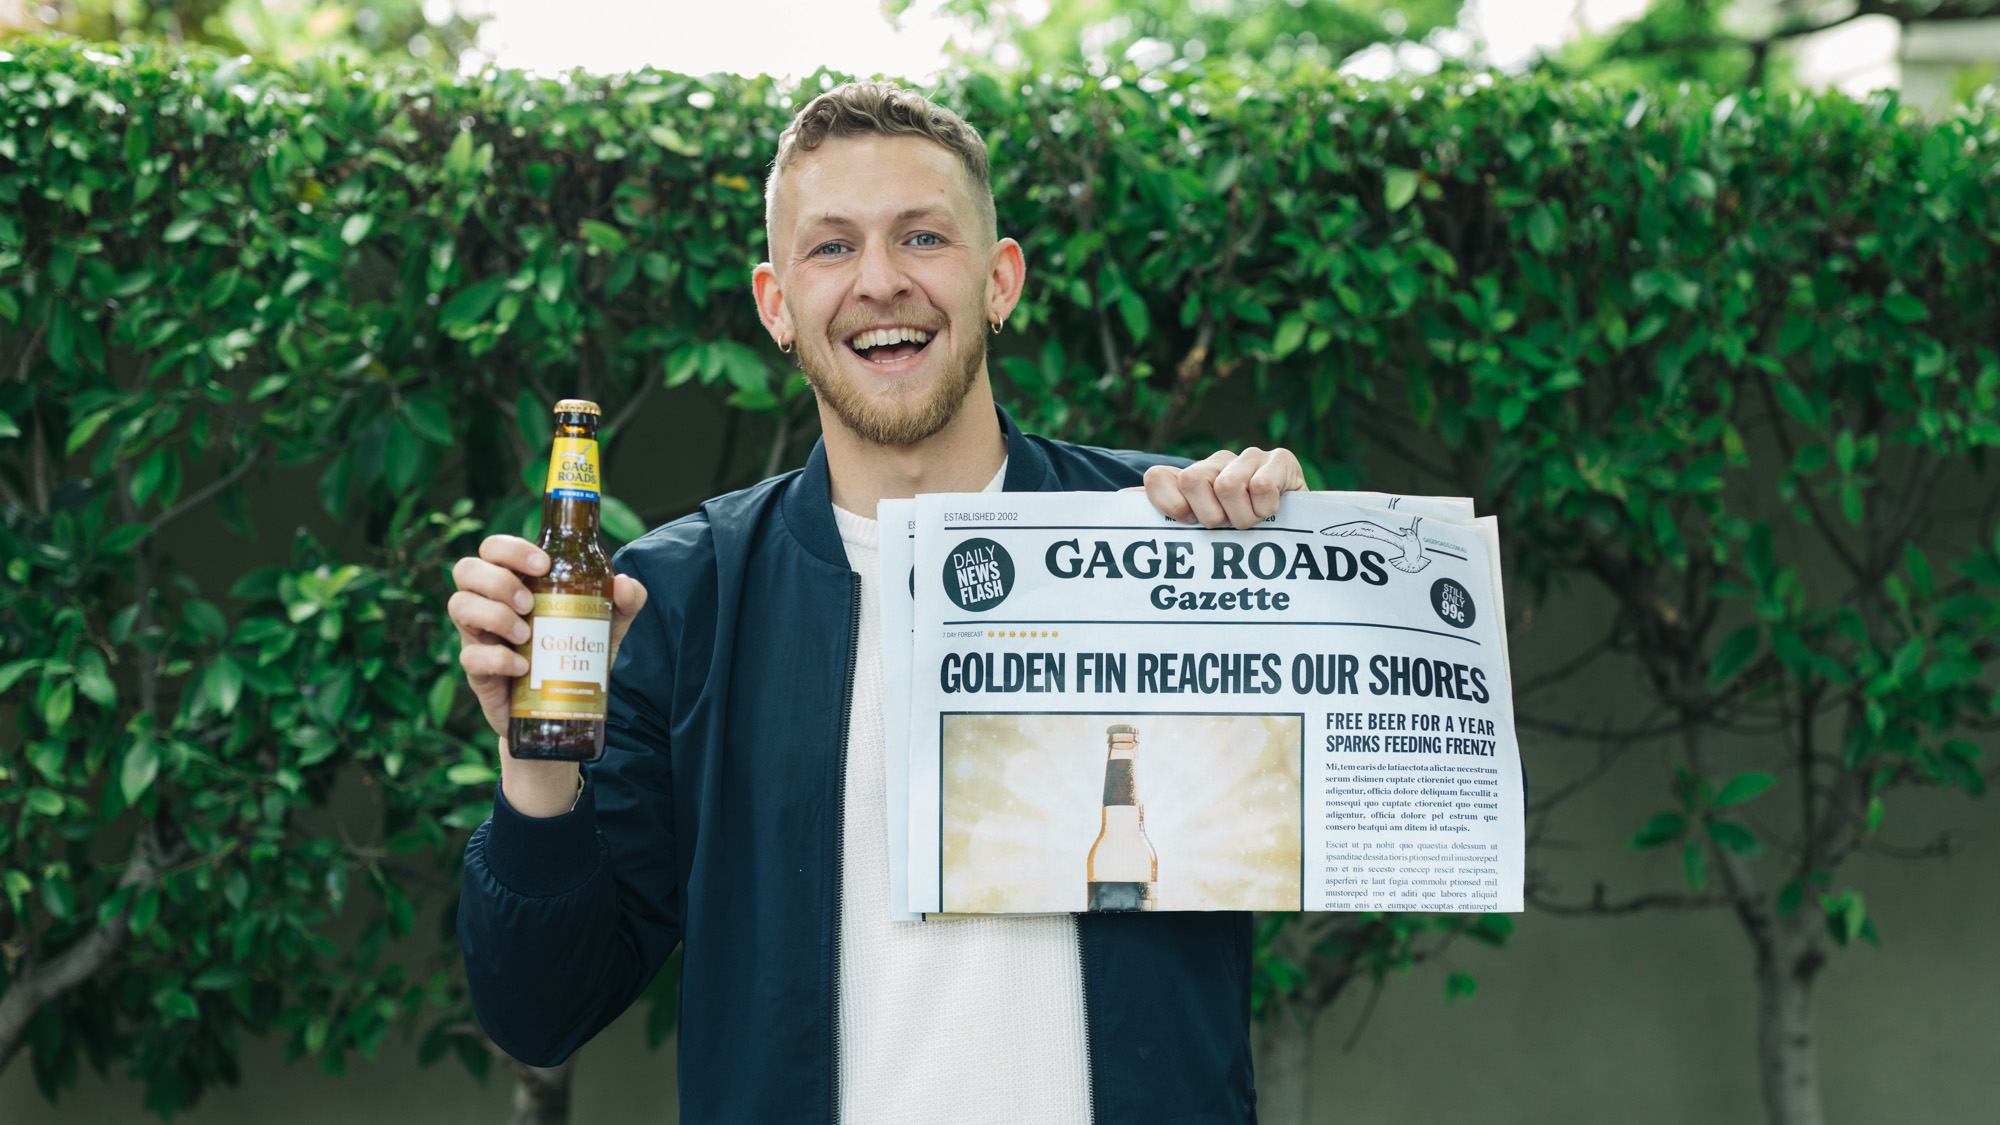 Gage Roads Brewing Co Recreates The Willy Wonka Golden Ticket via MITP Agency